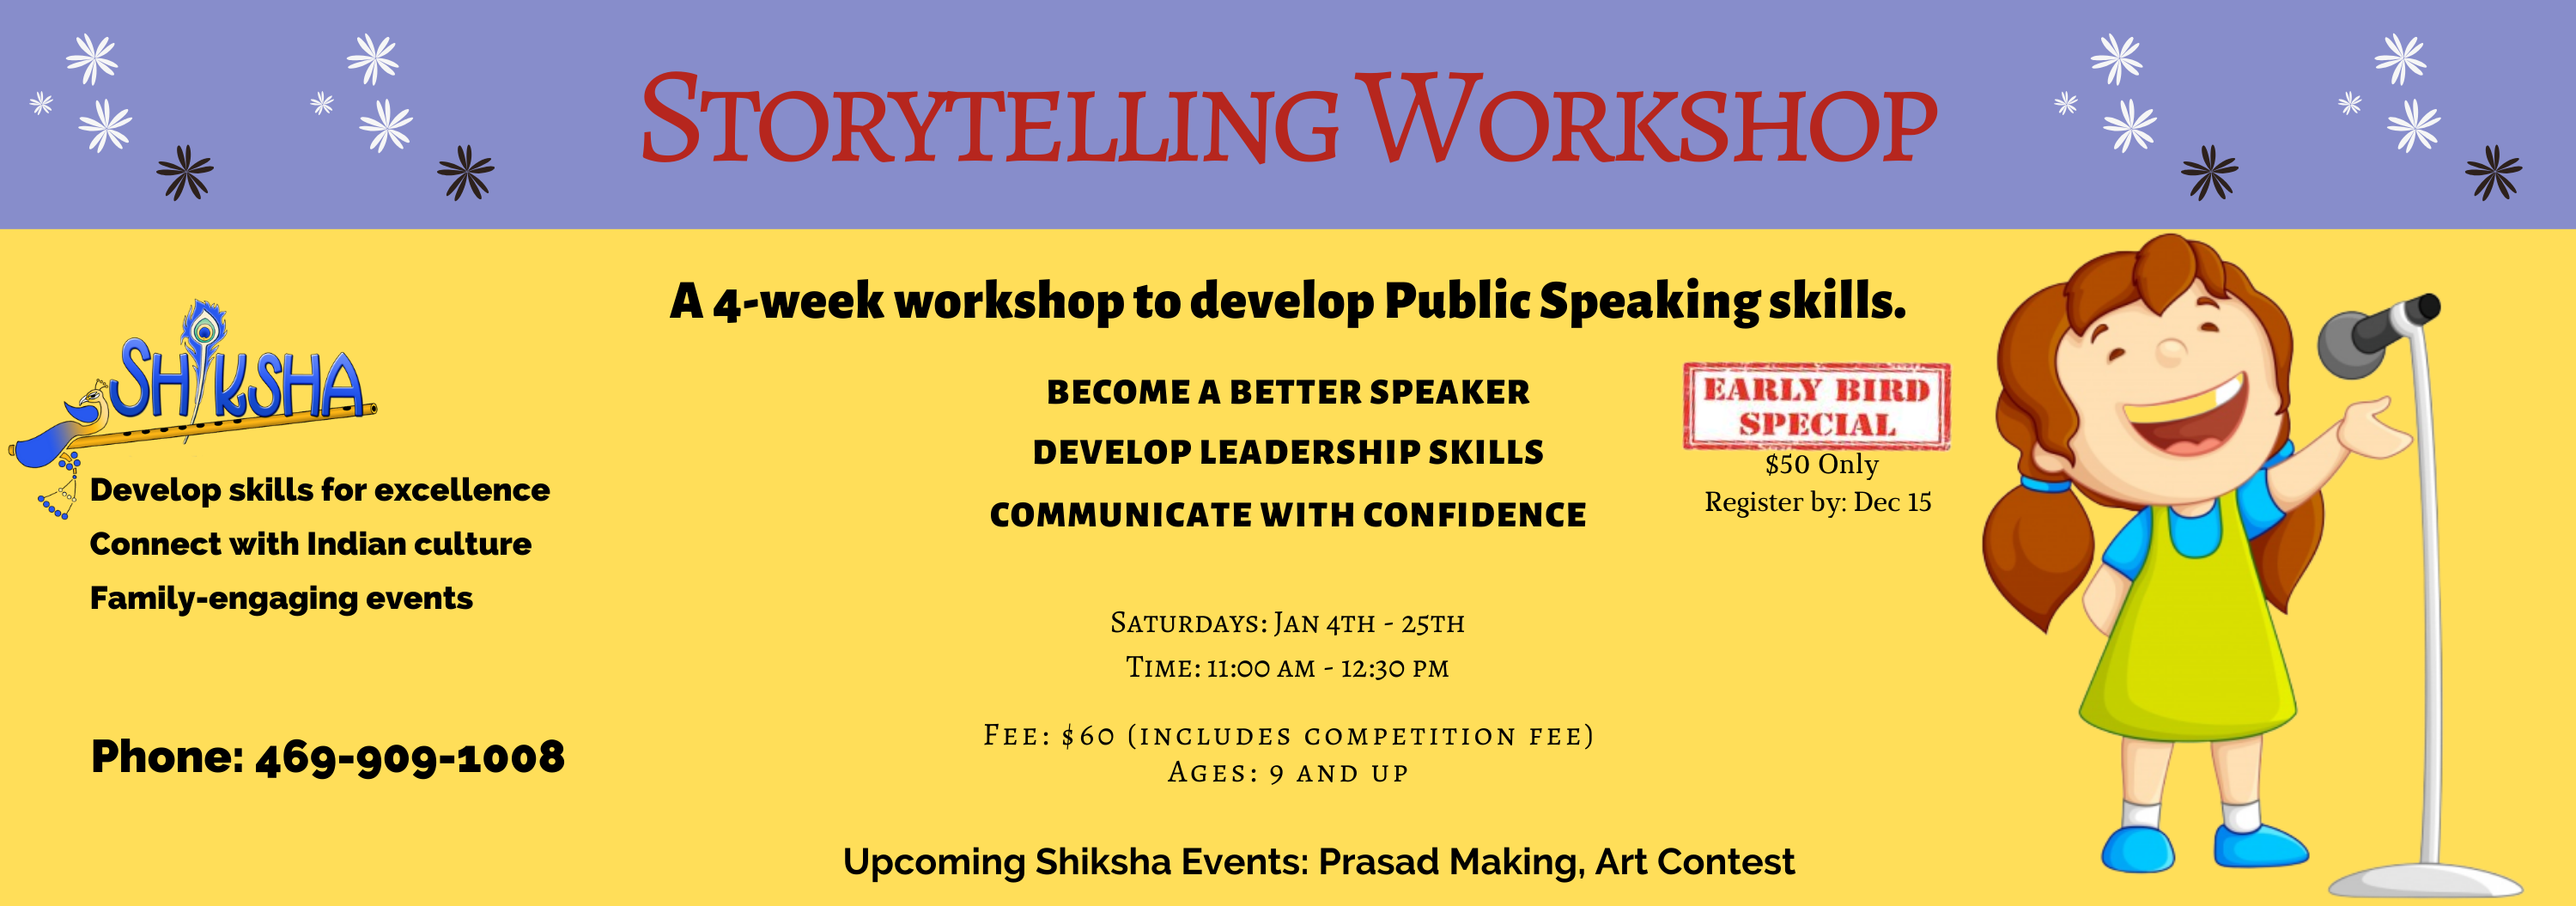 Story Telling Workshop Banner